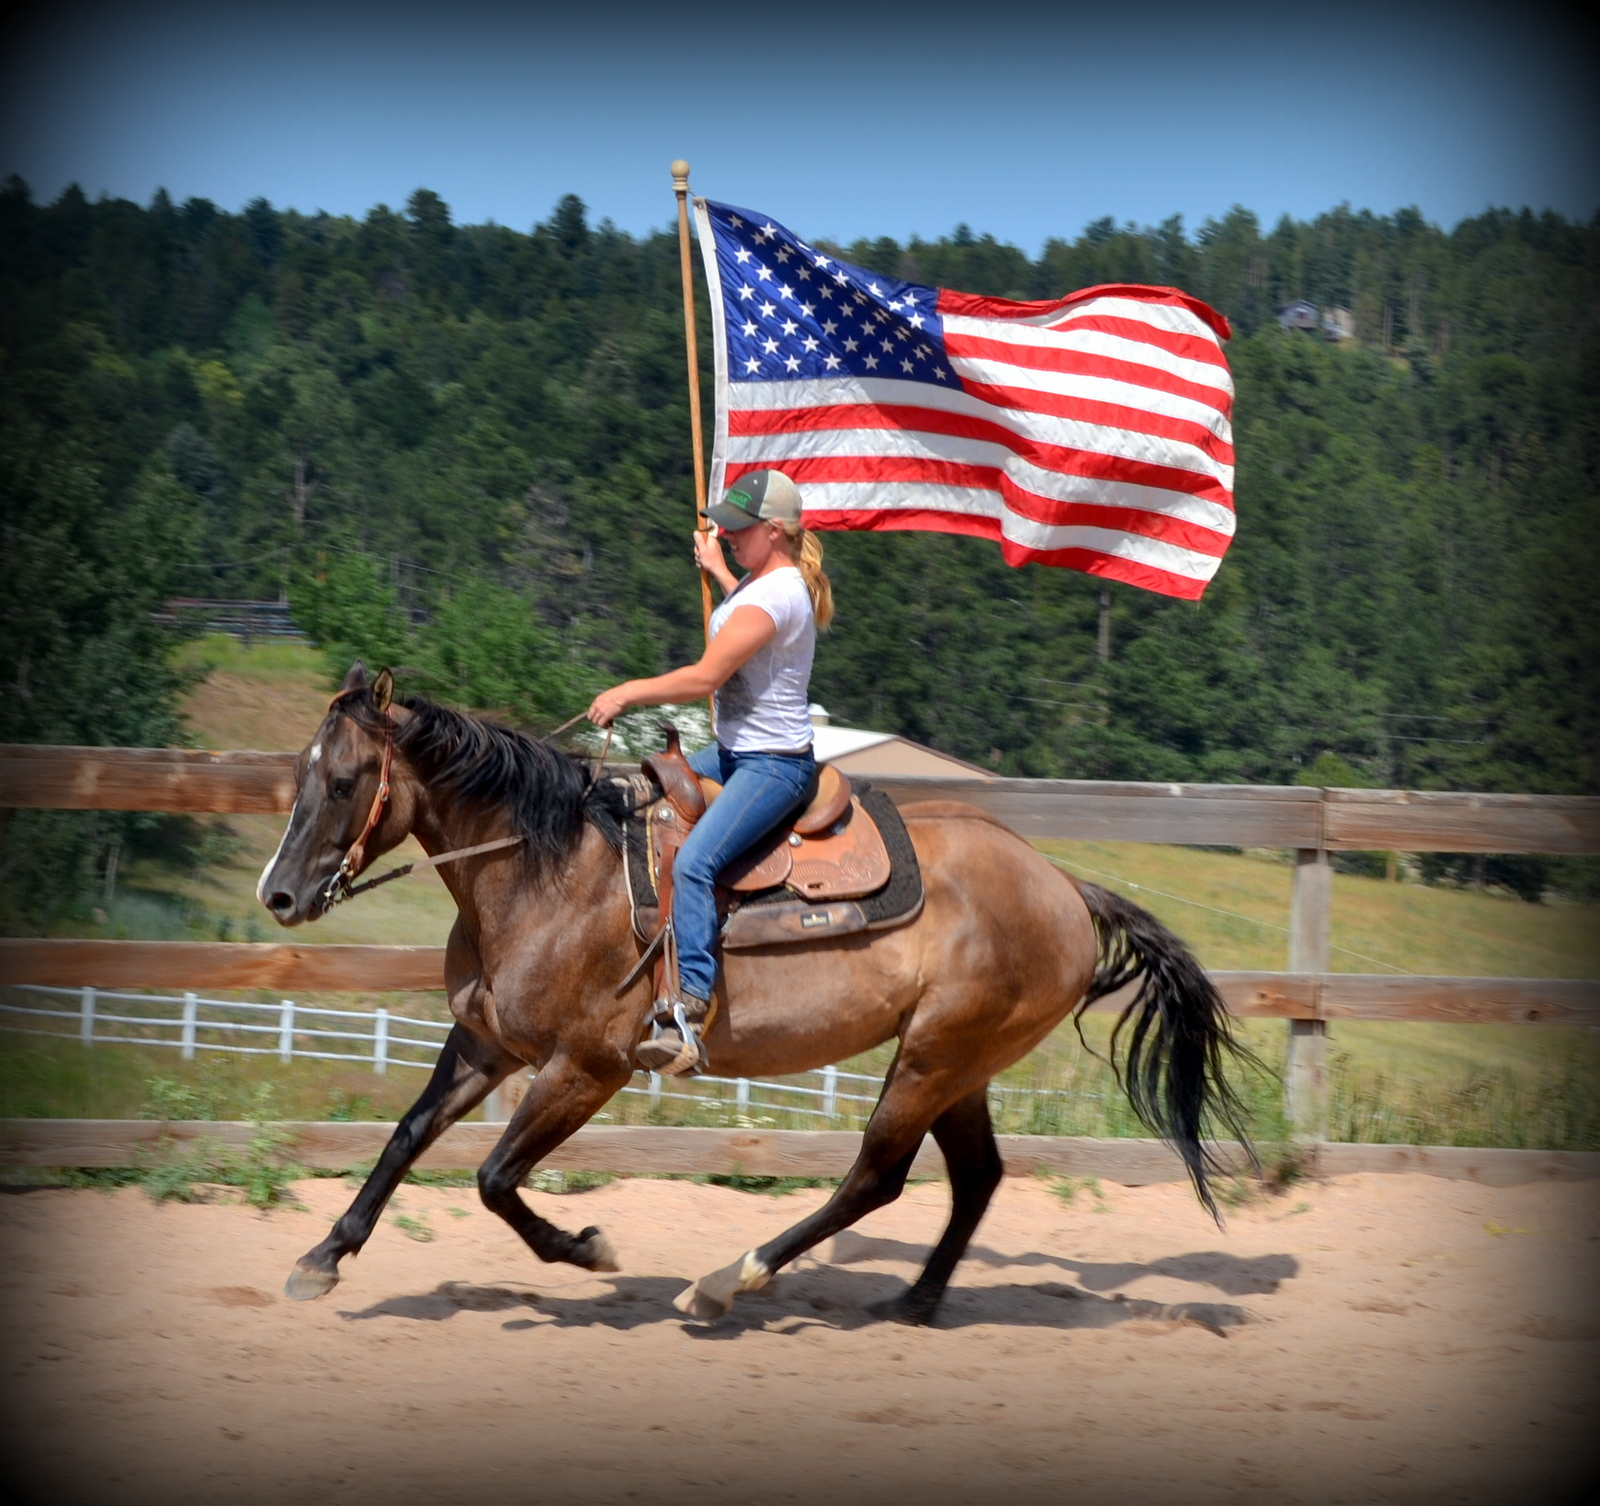 Brittnee teaching a horse to carry a flag